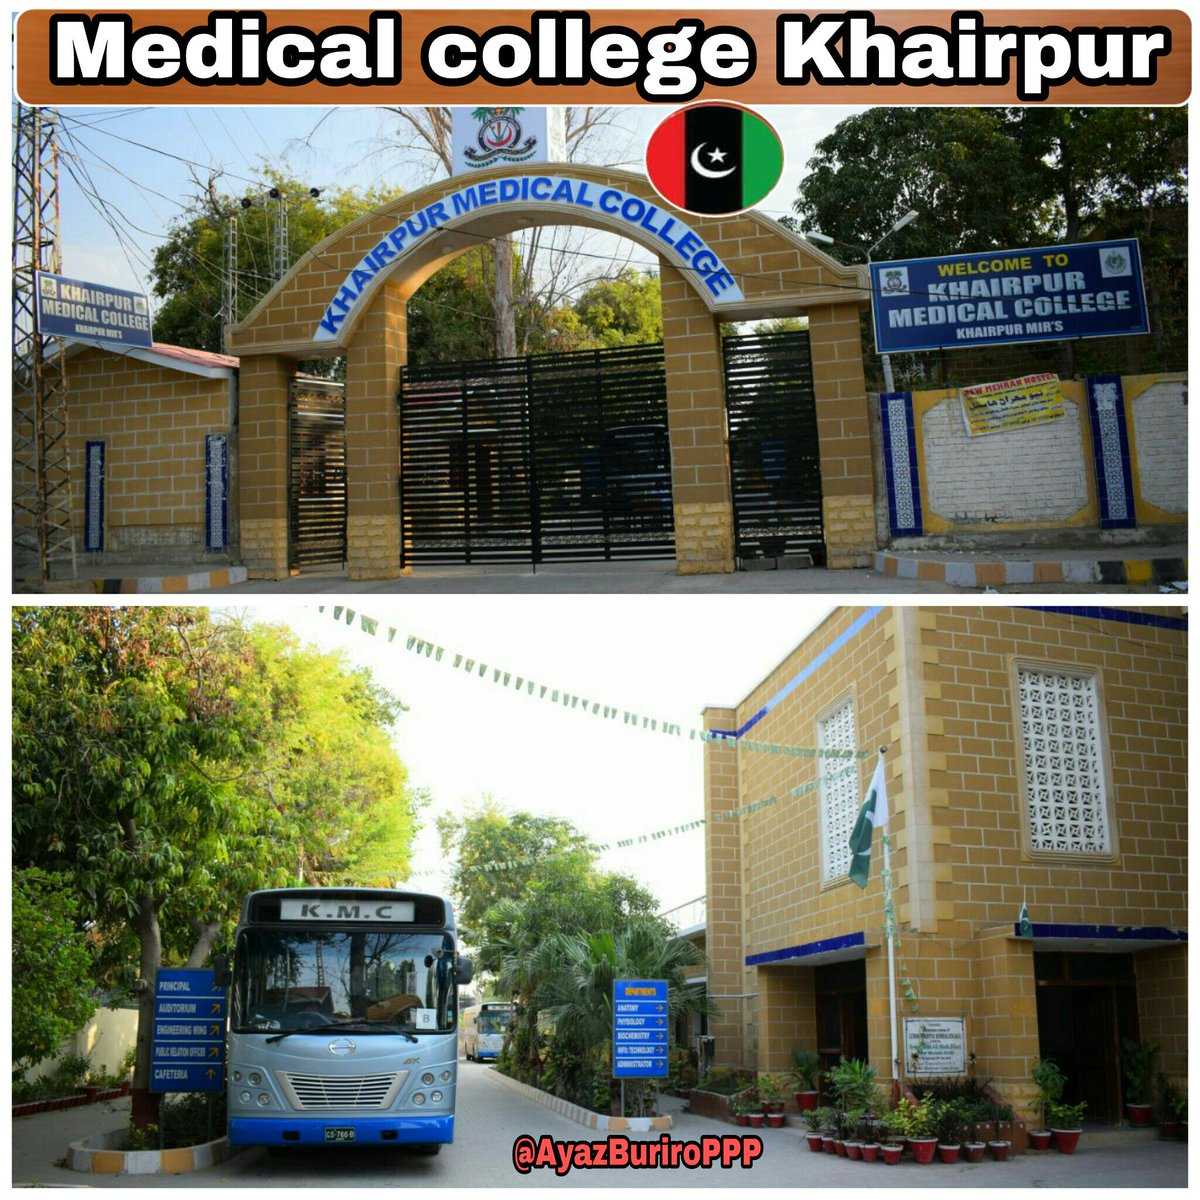 Constructed medical College Khairpur #Health #Education #PPPGovtProject<br>http://pic.twitter.com/YnyS4ebgdc